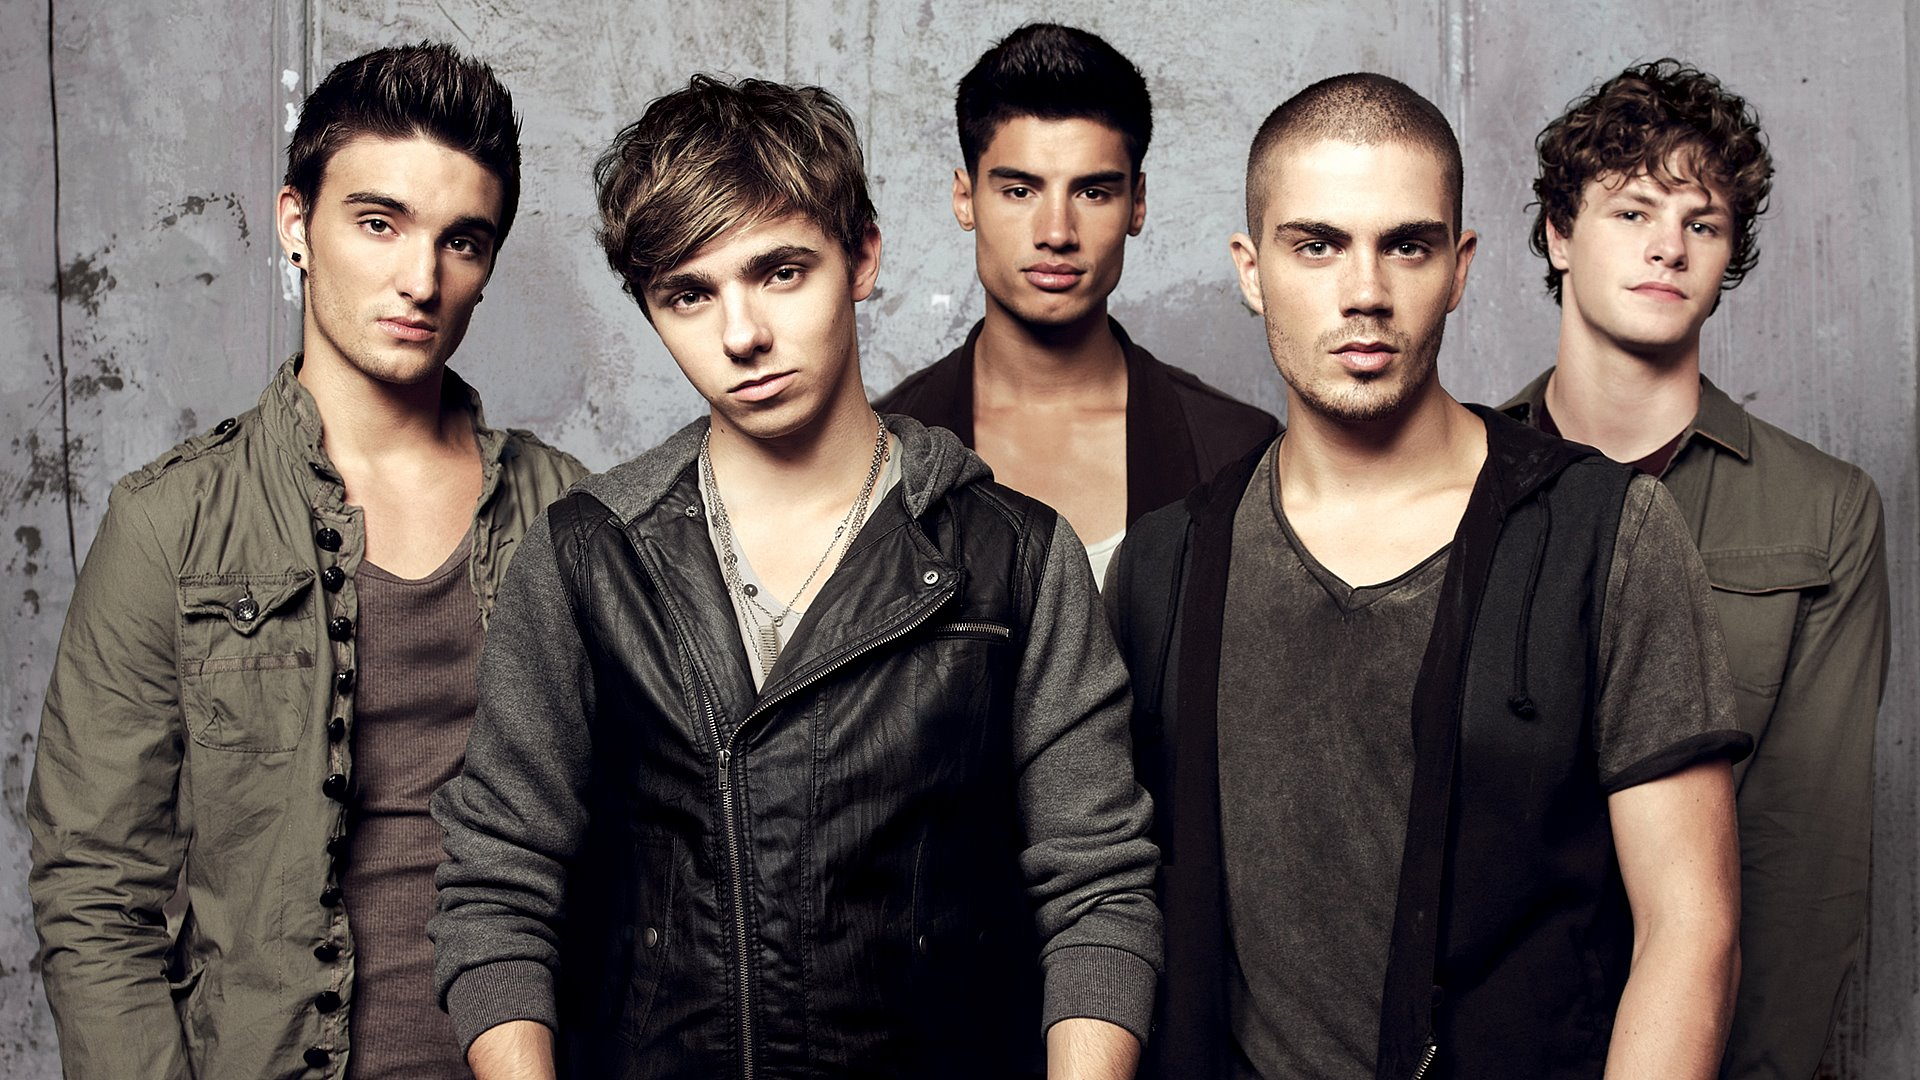 The Wanted xx   The Wanted Wallpaper 32887891 1920x1080